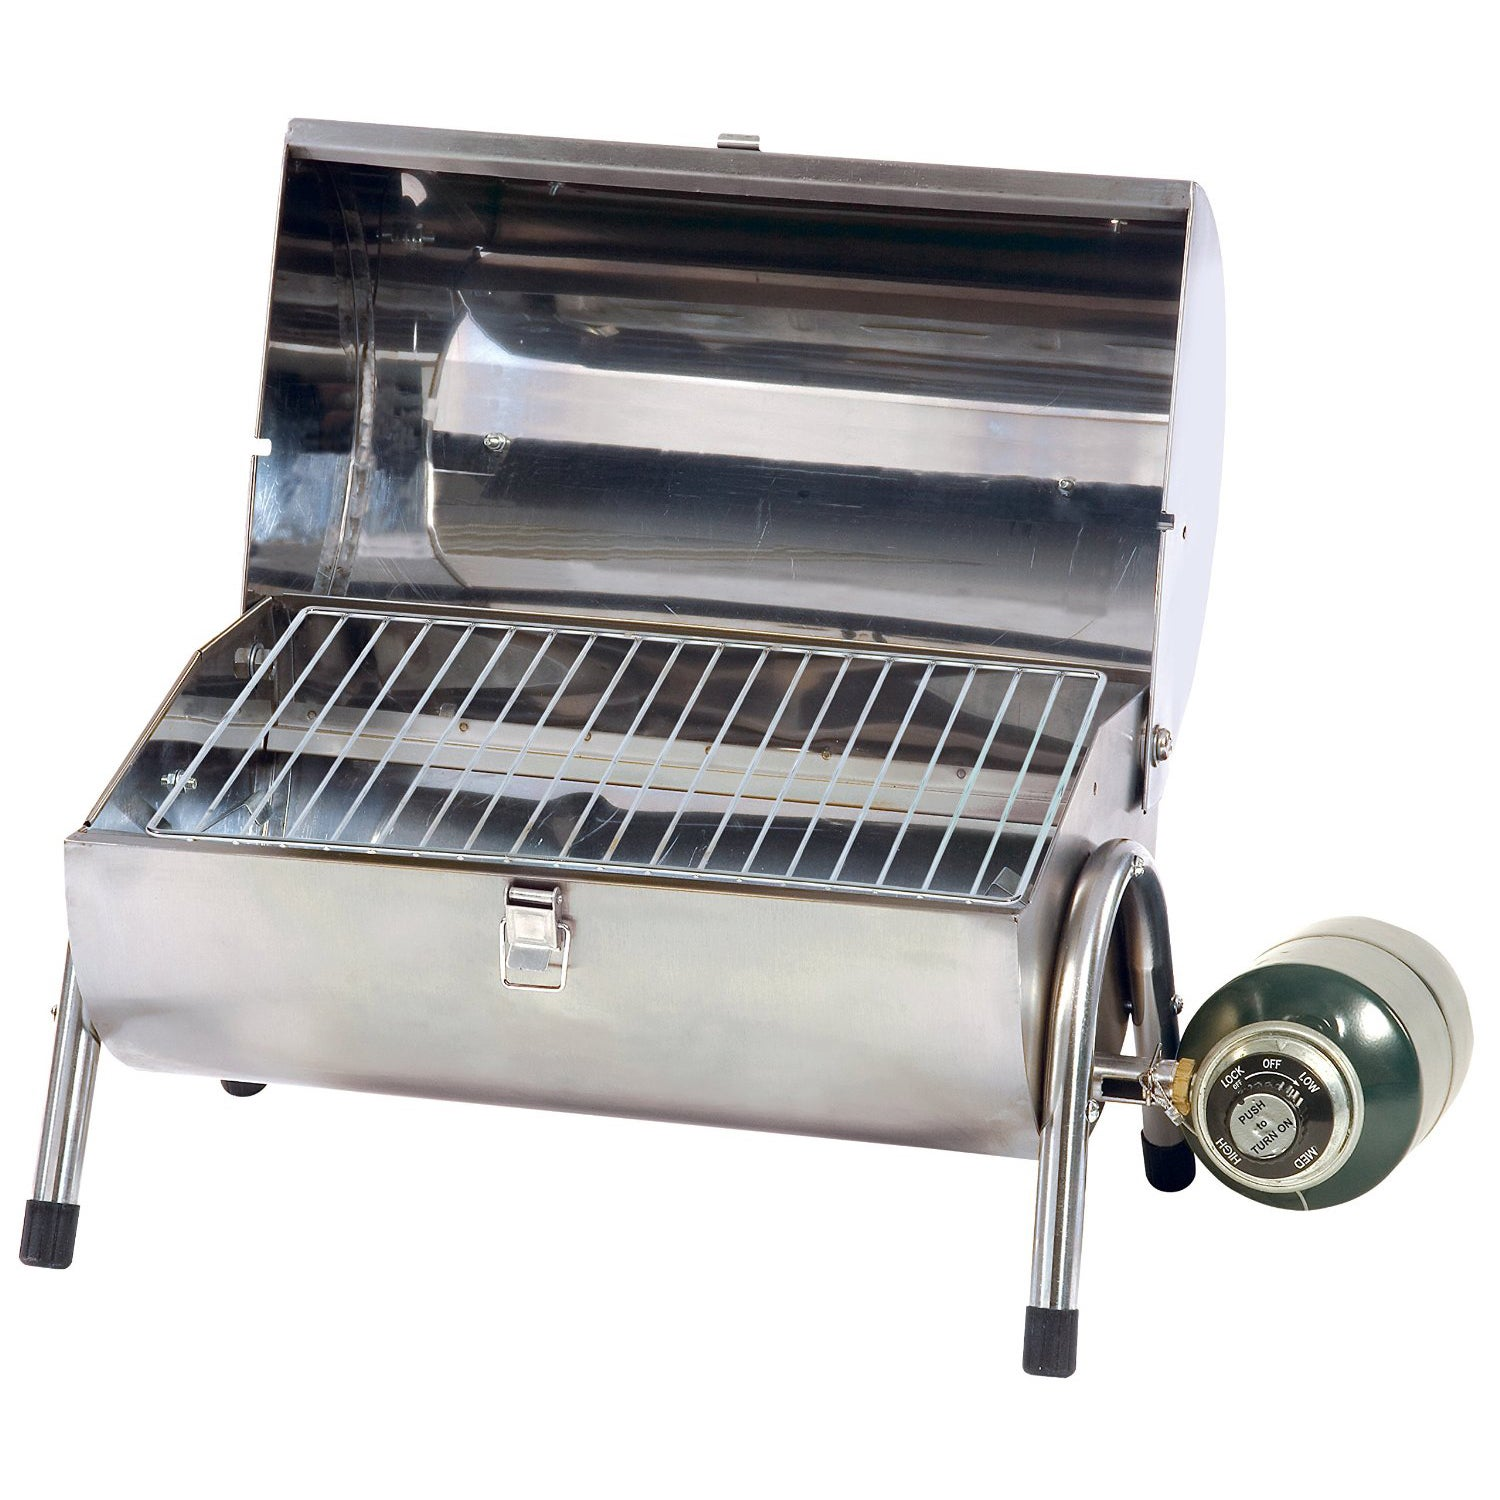 Stansport 10,000 BTU Stainless Steel Portable Gas Grill, .